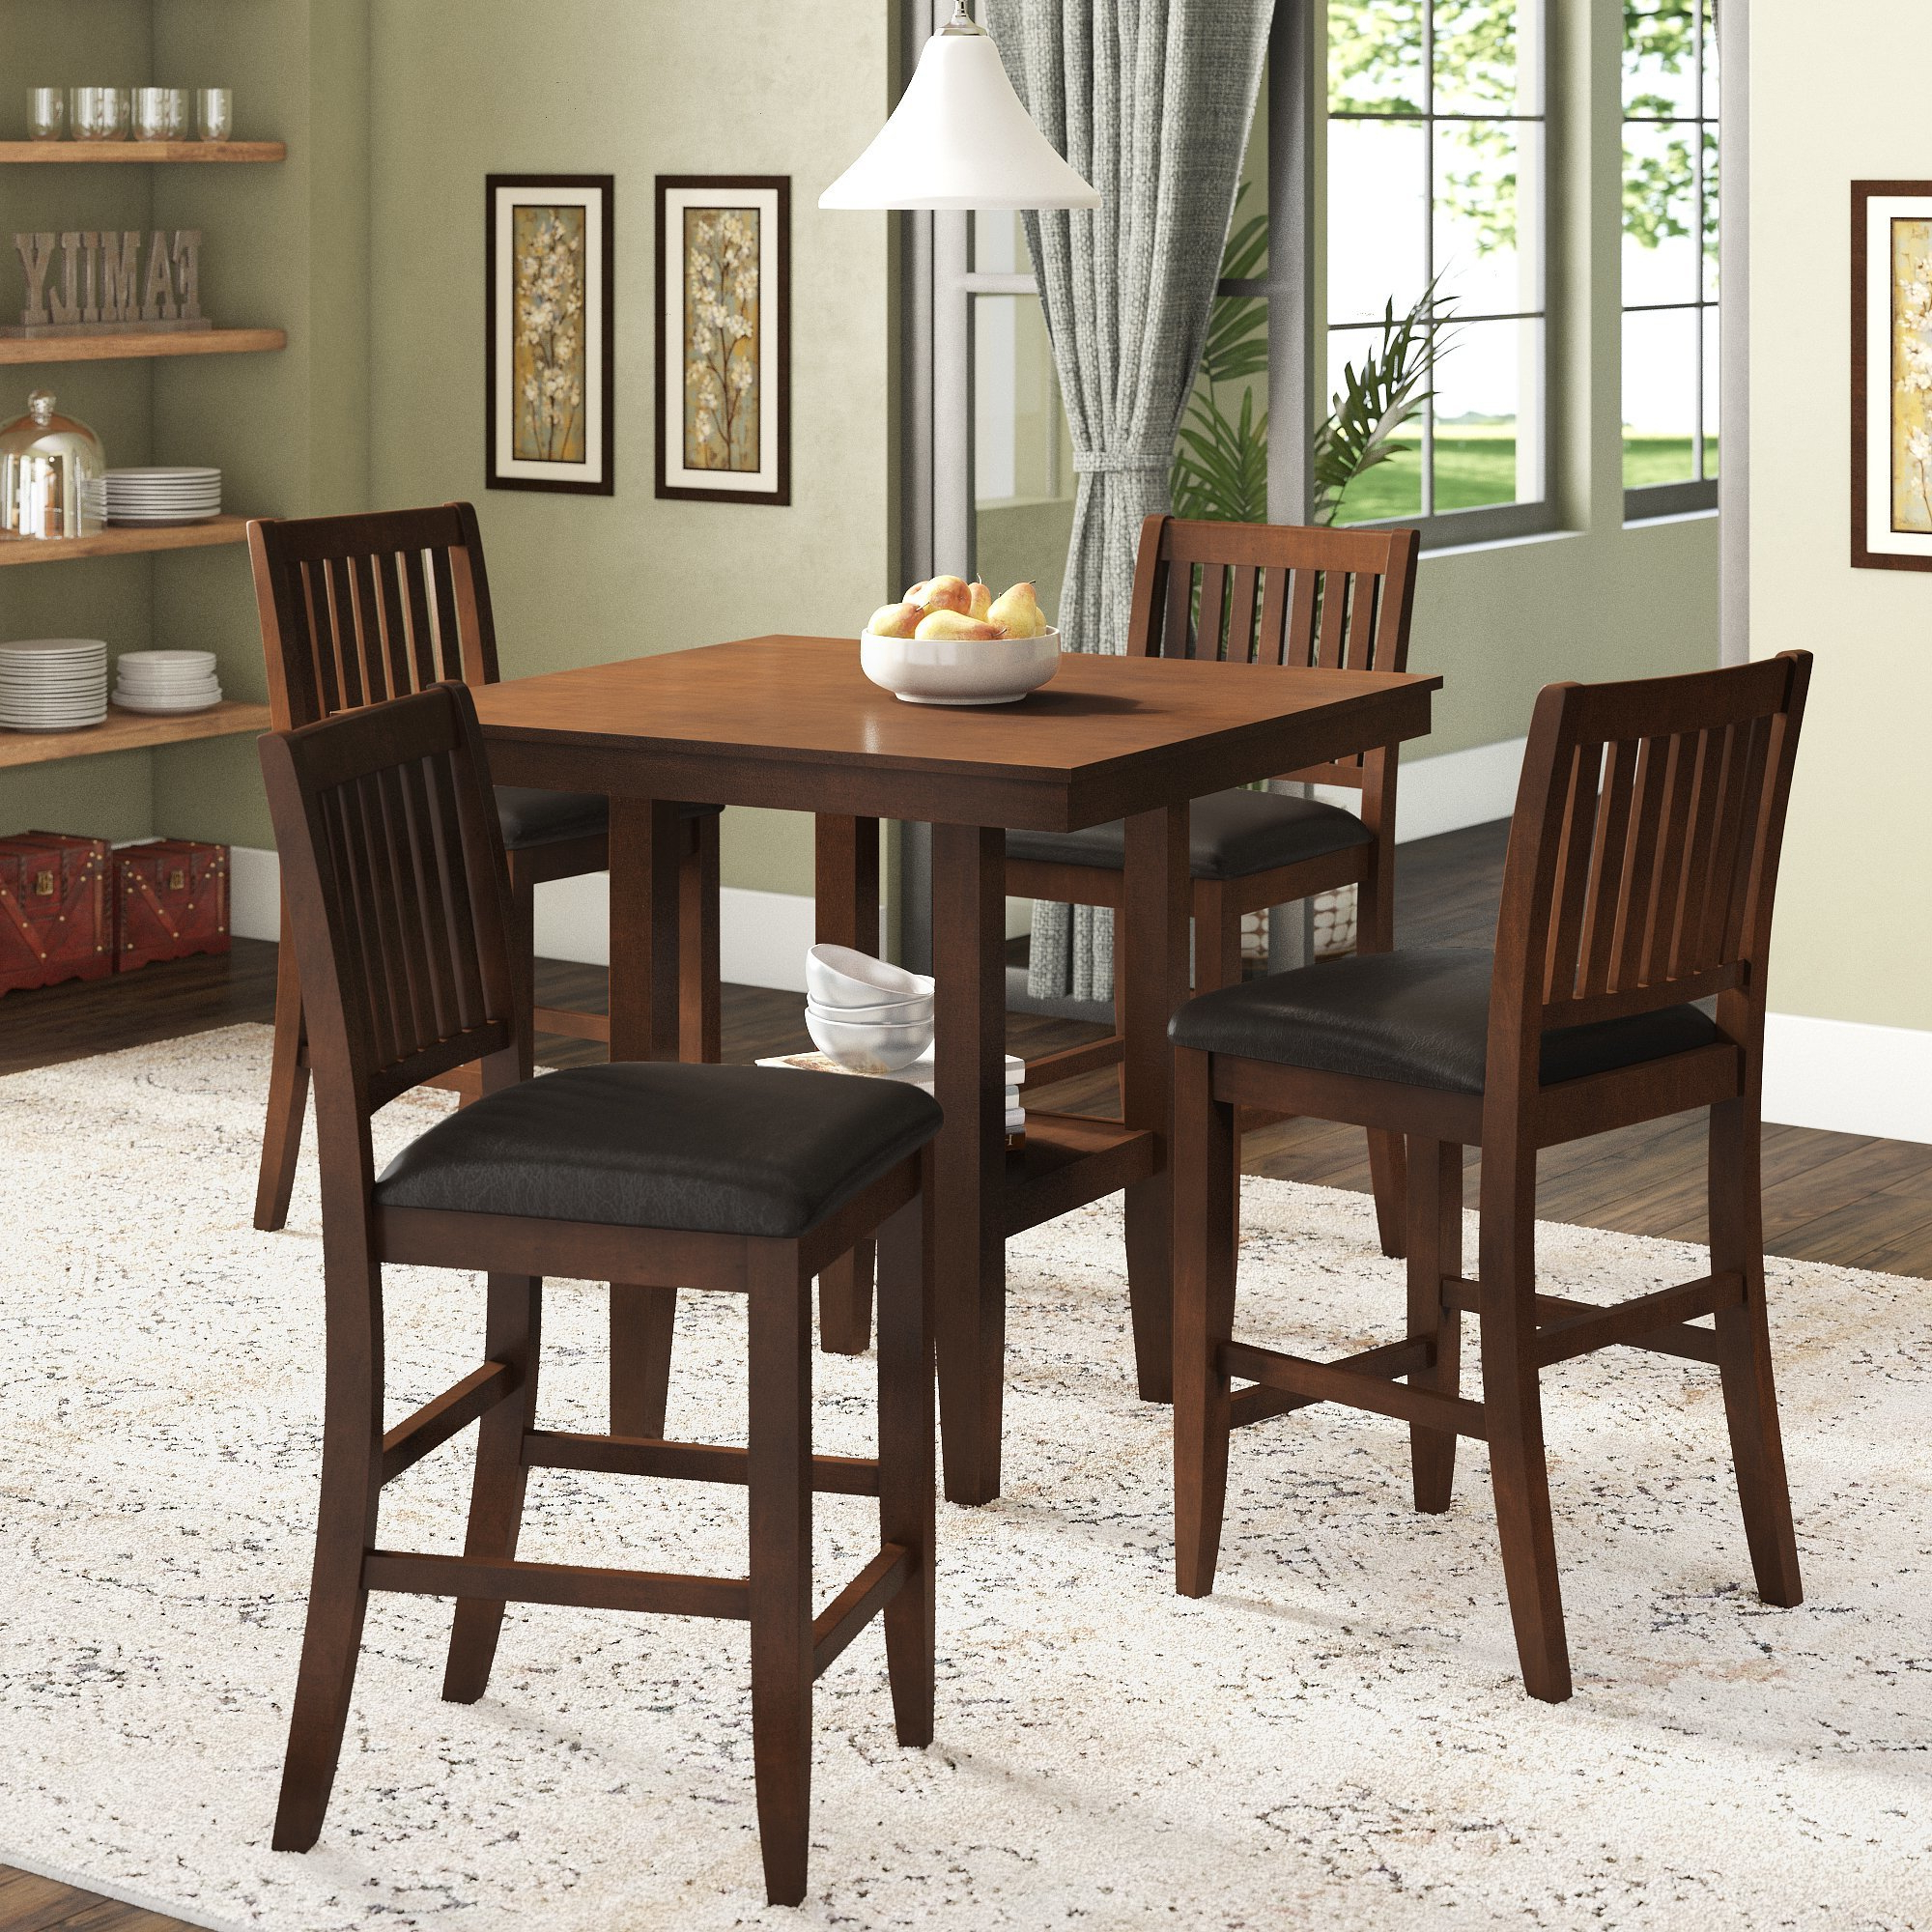 Ebay Pertaining To Preferred Kerley 4 Piece Dining Sets (View 5 of 25)